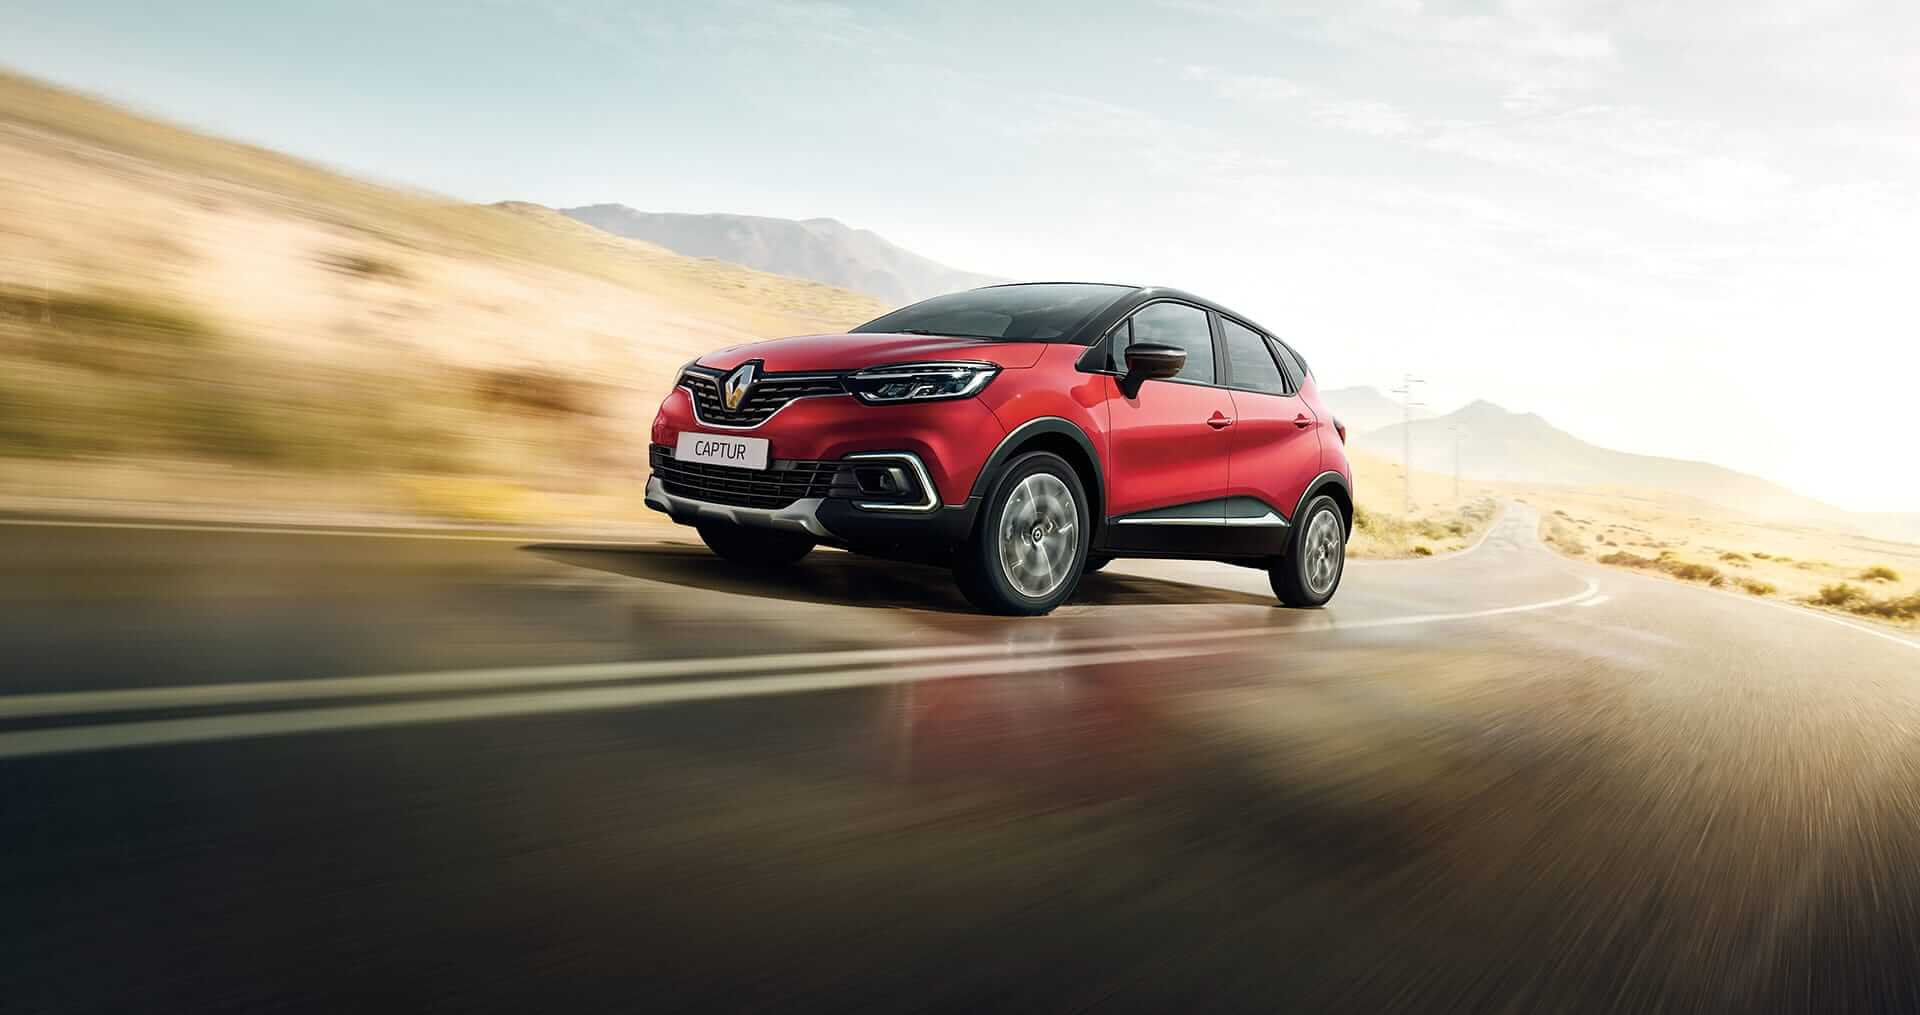 Renault Captur Intens 1.2 AT Turbo techo panorámico